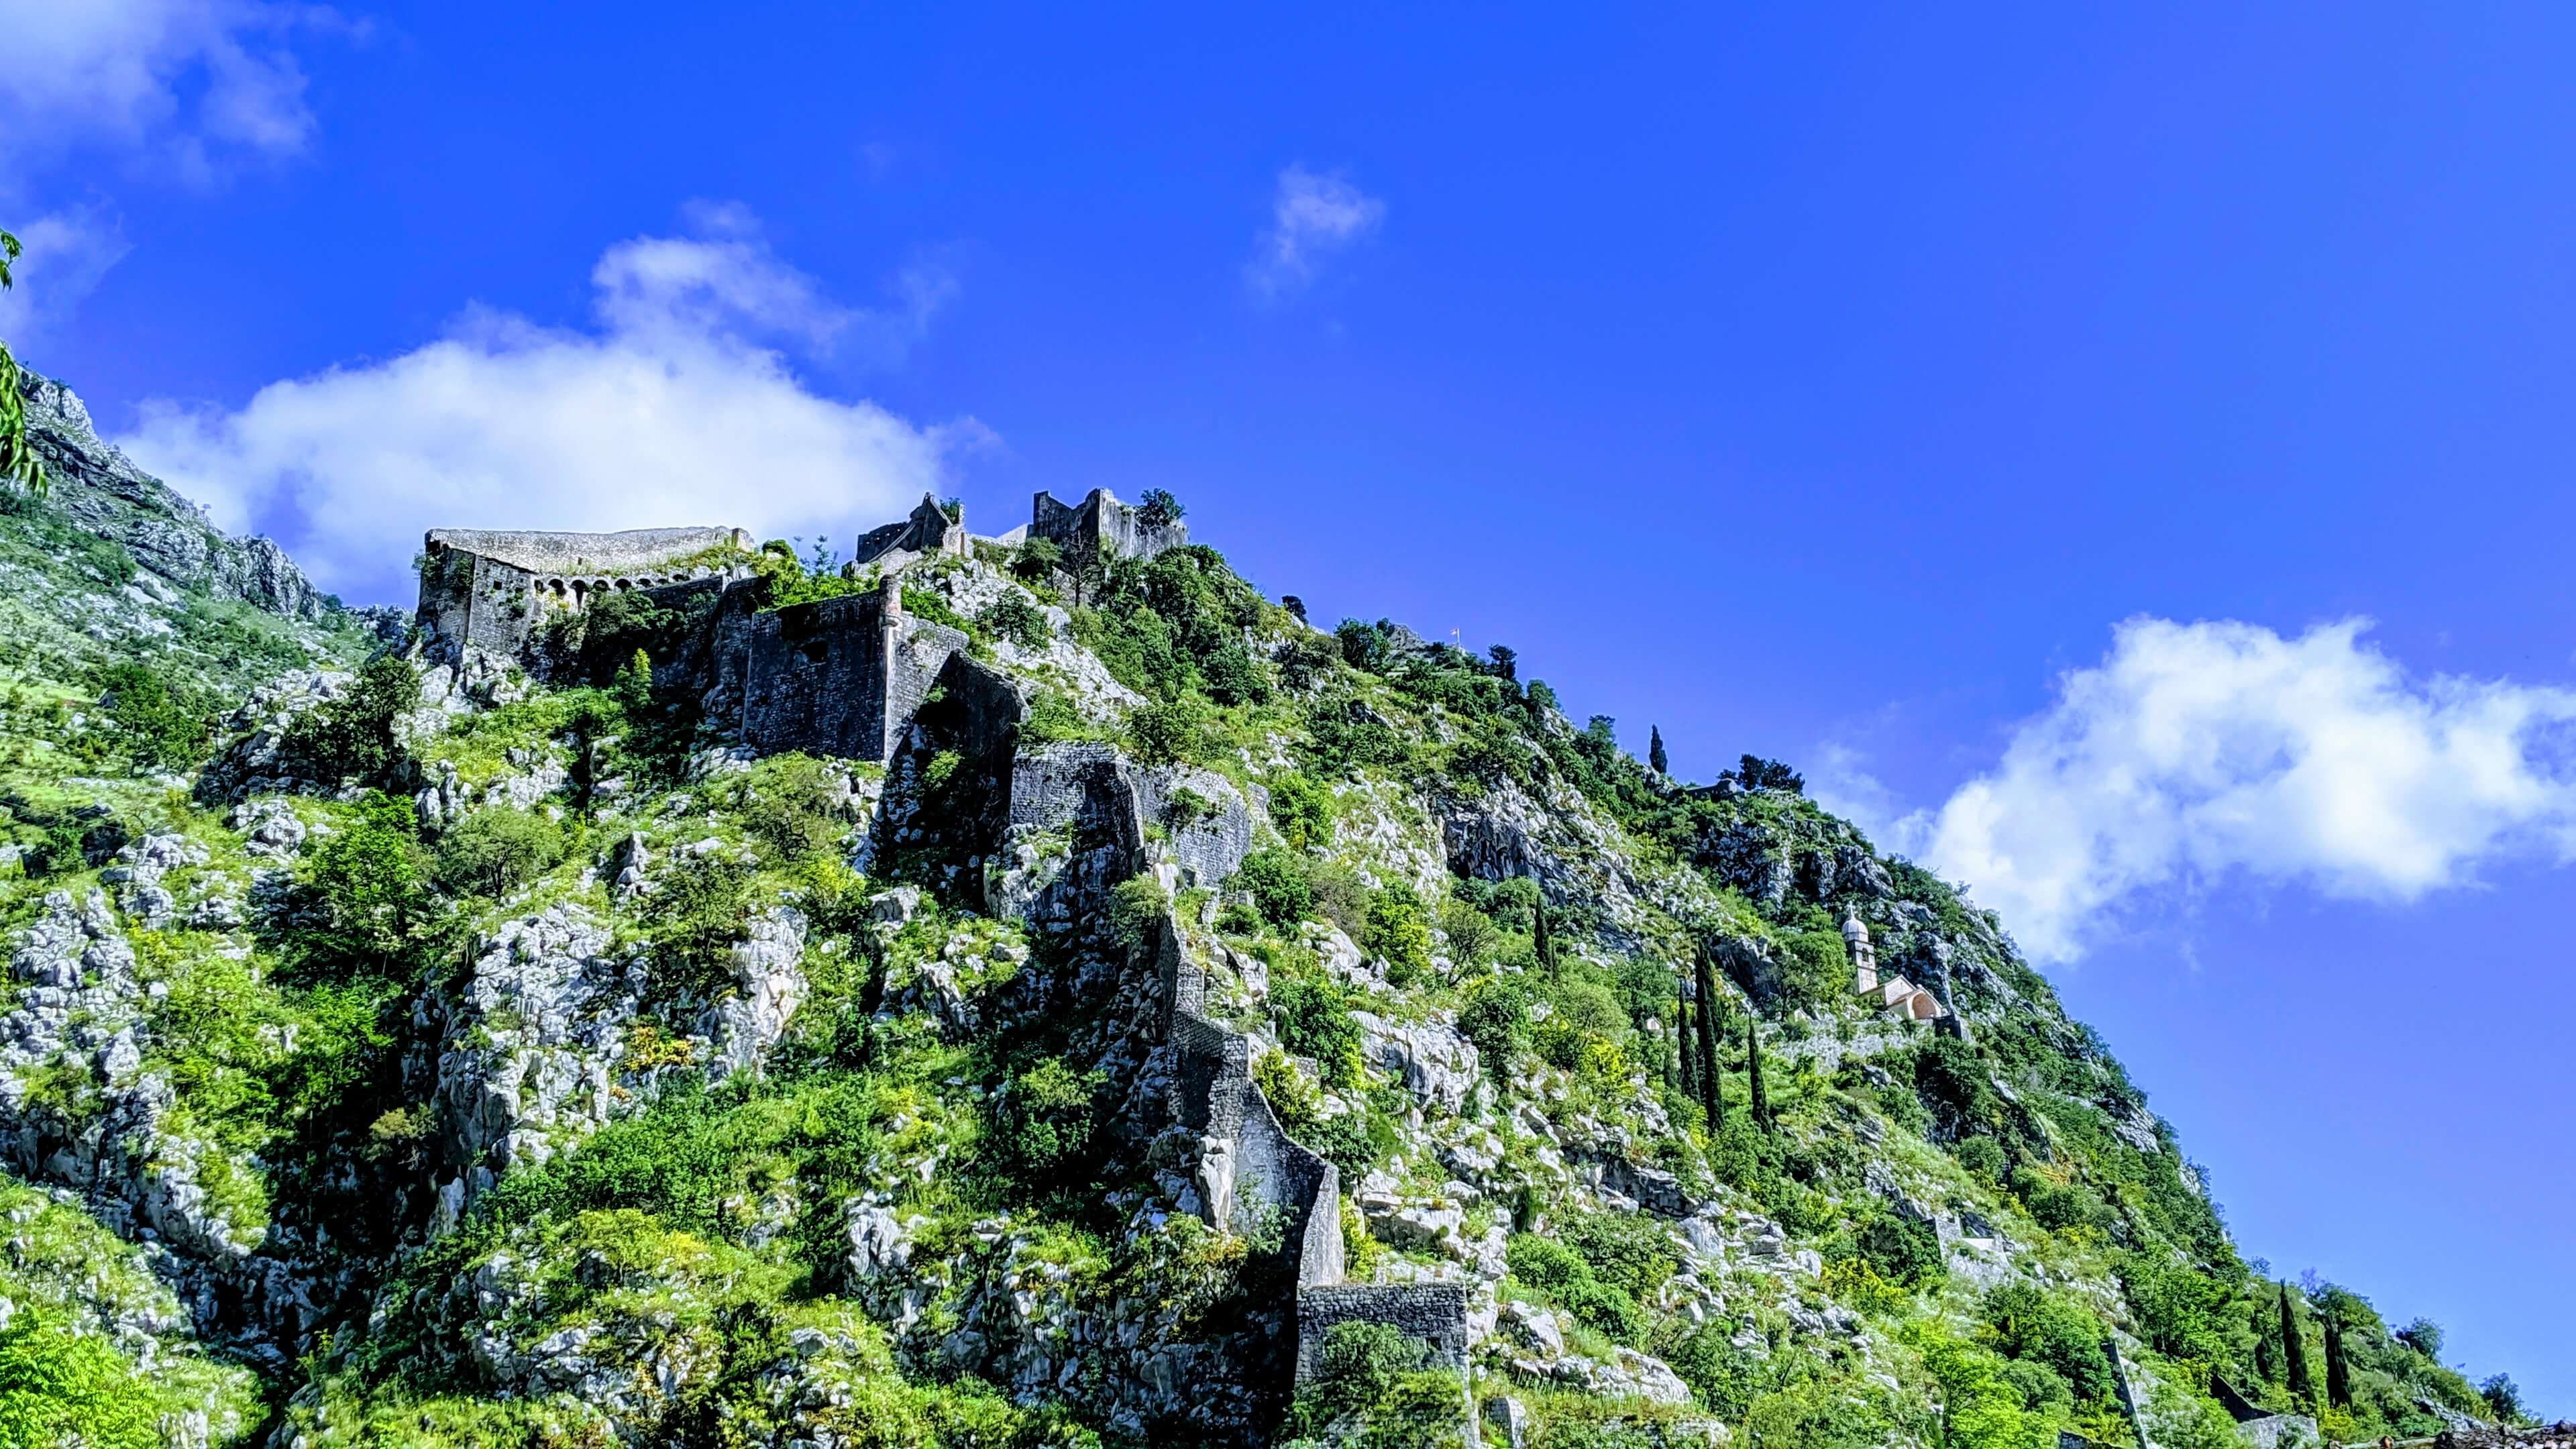 The view of Sveti Ivan Fortress from the trail below